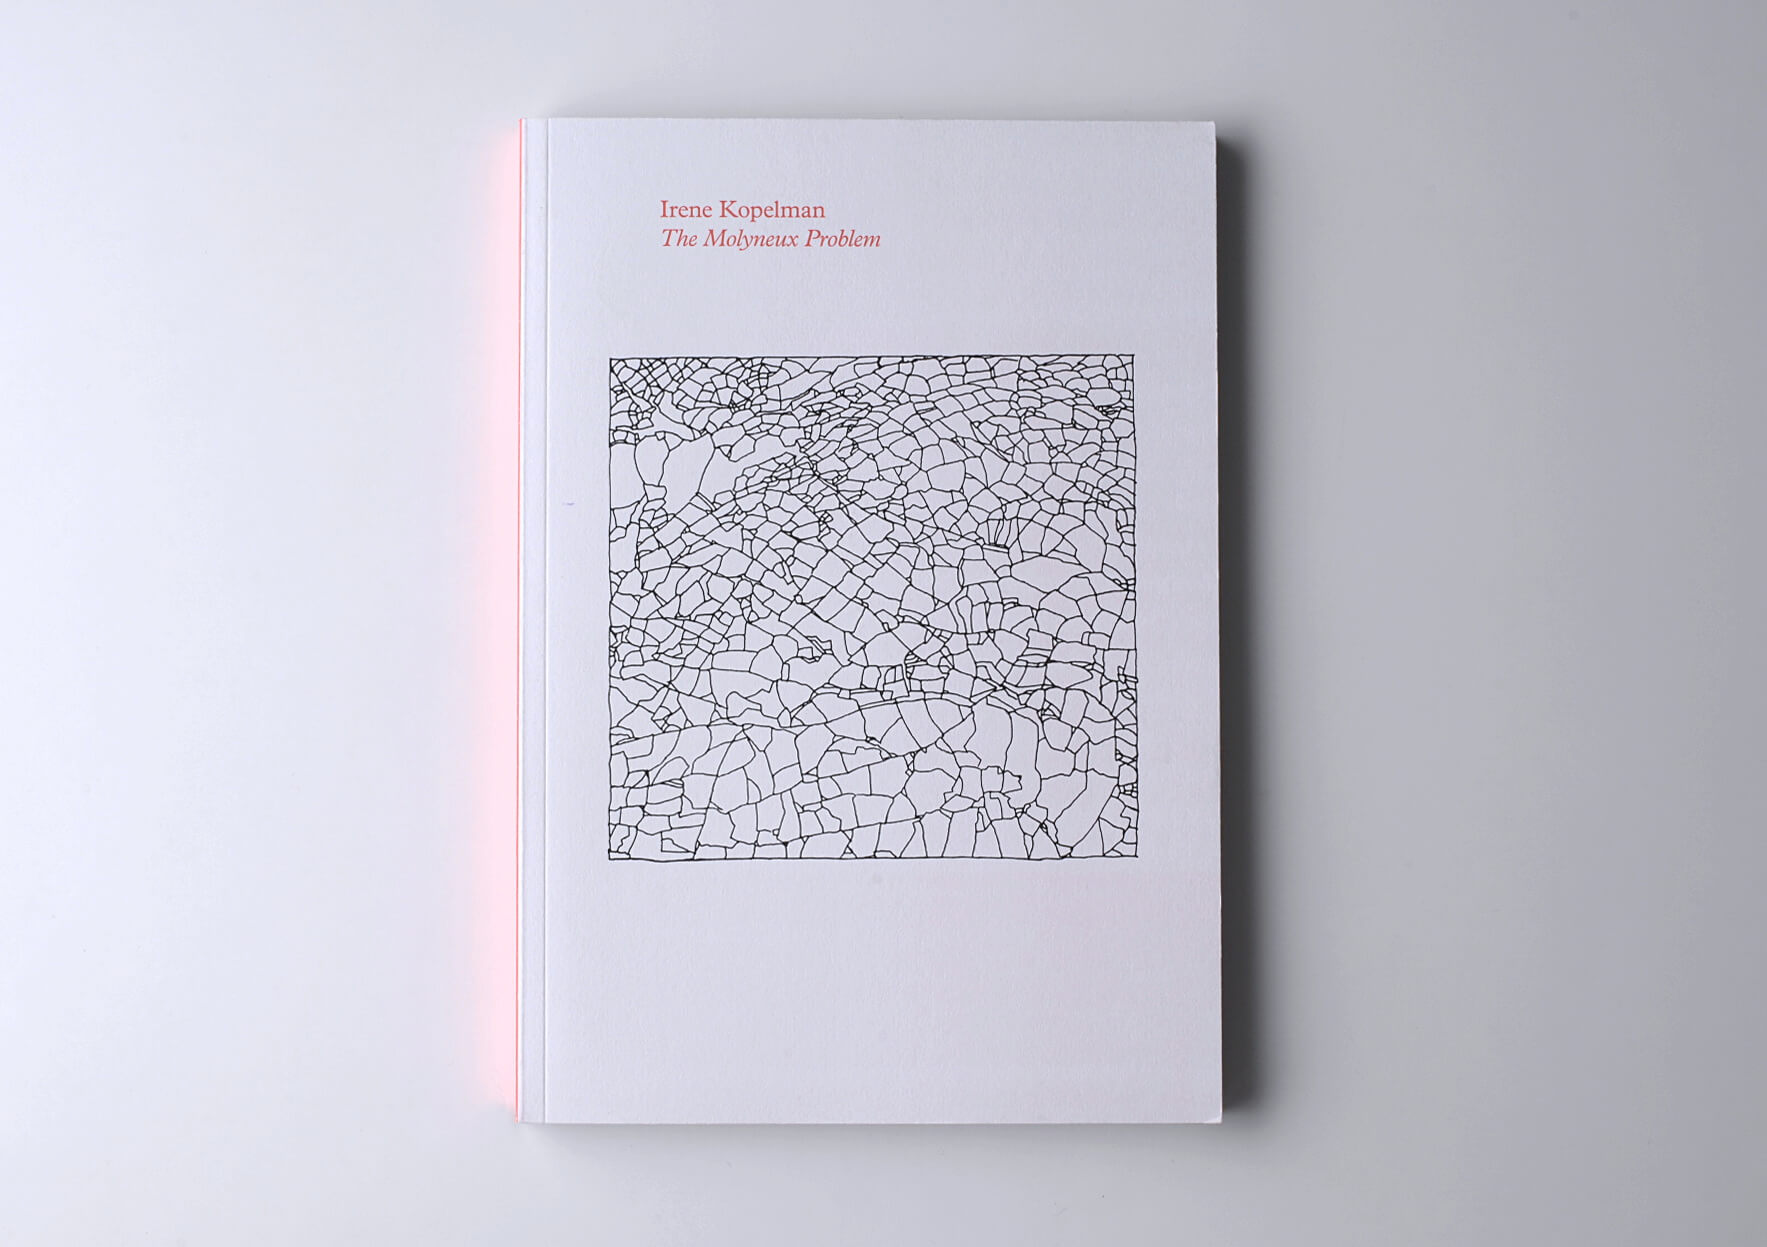 Irene Kopelman The Molyneux Problem, 2012 23 x 16,5 cm, 144 p. Texts in English. Ed. Roma Publications | Mother | ProjecteSD